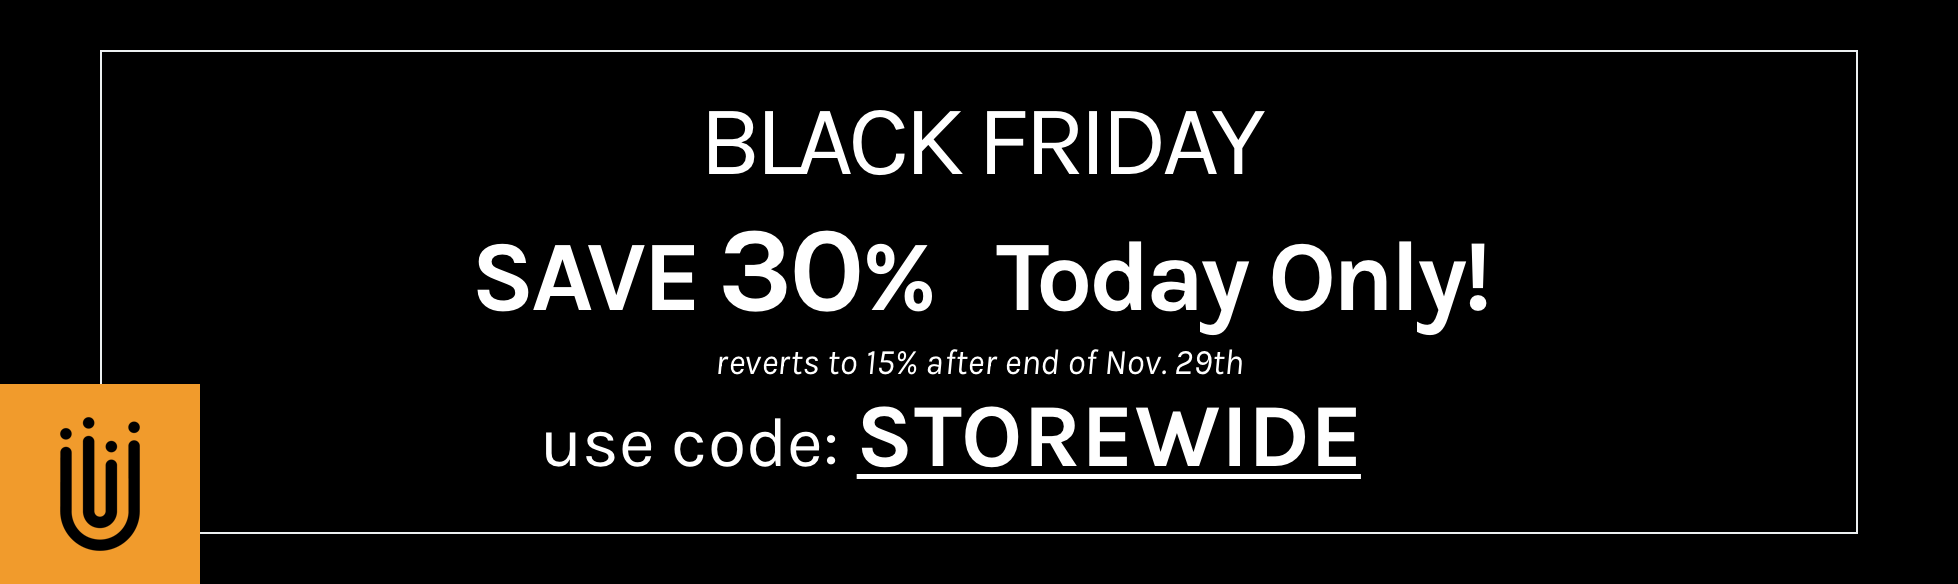 Black Friday - Storewide Sale 30 Percent Off.png